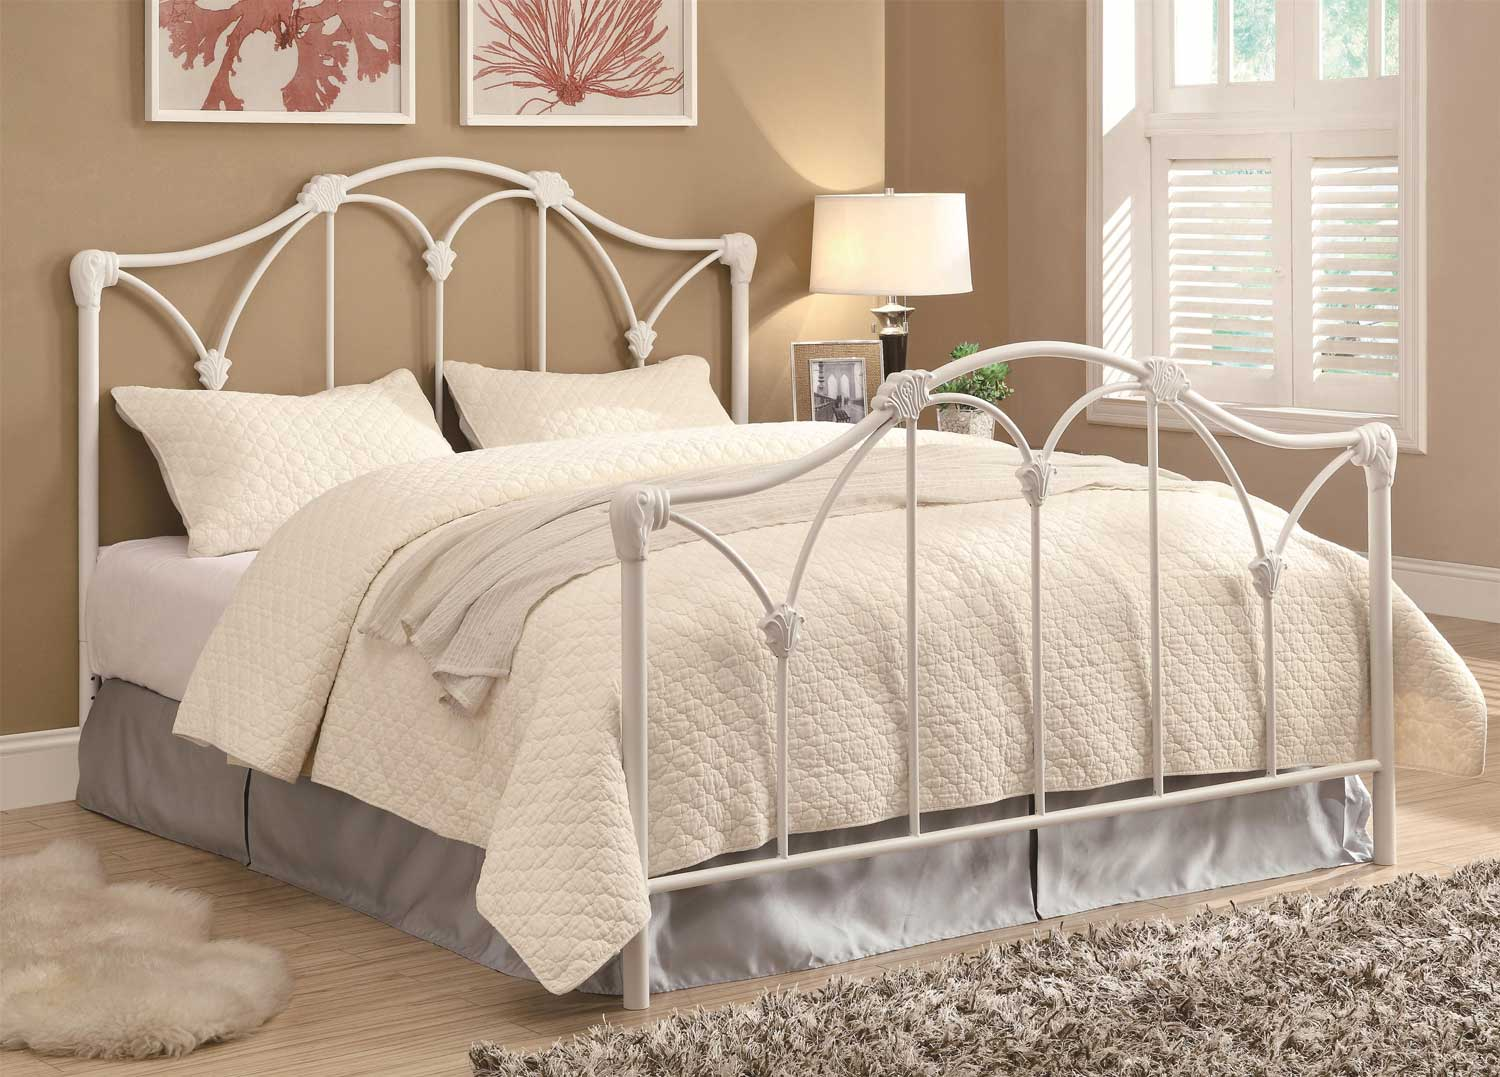 Coaster 300257 Queen Bed - White